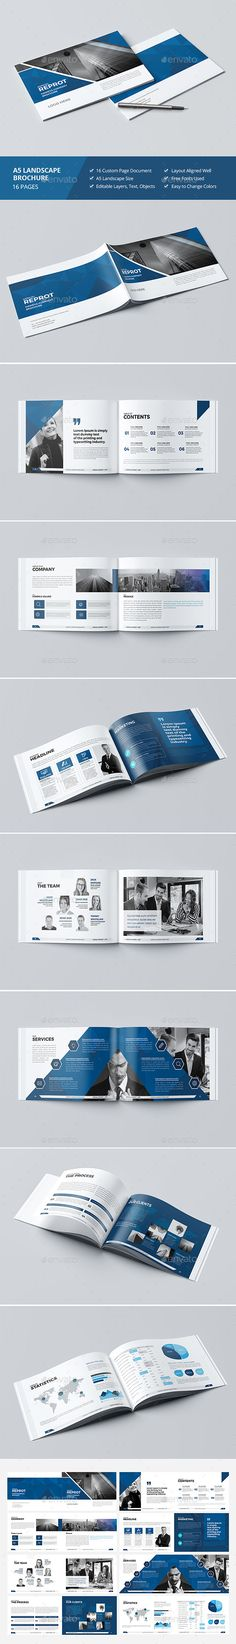 Haweya Landscape Brochure 16 Pages Template 	InDesign INDD